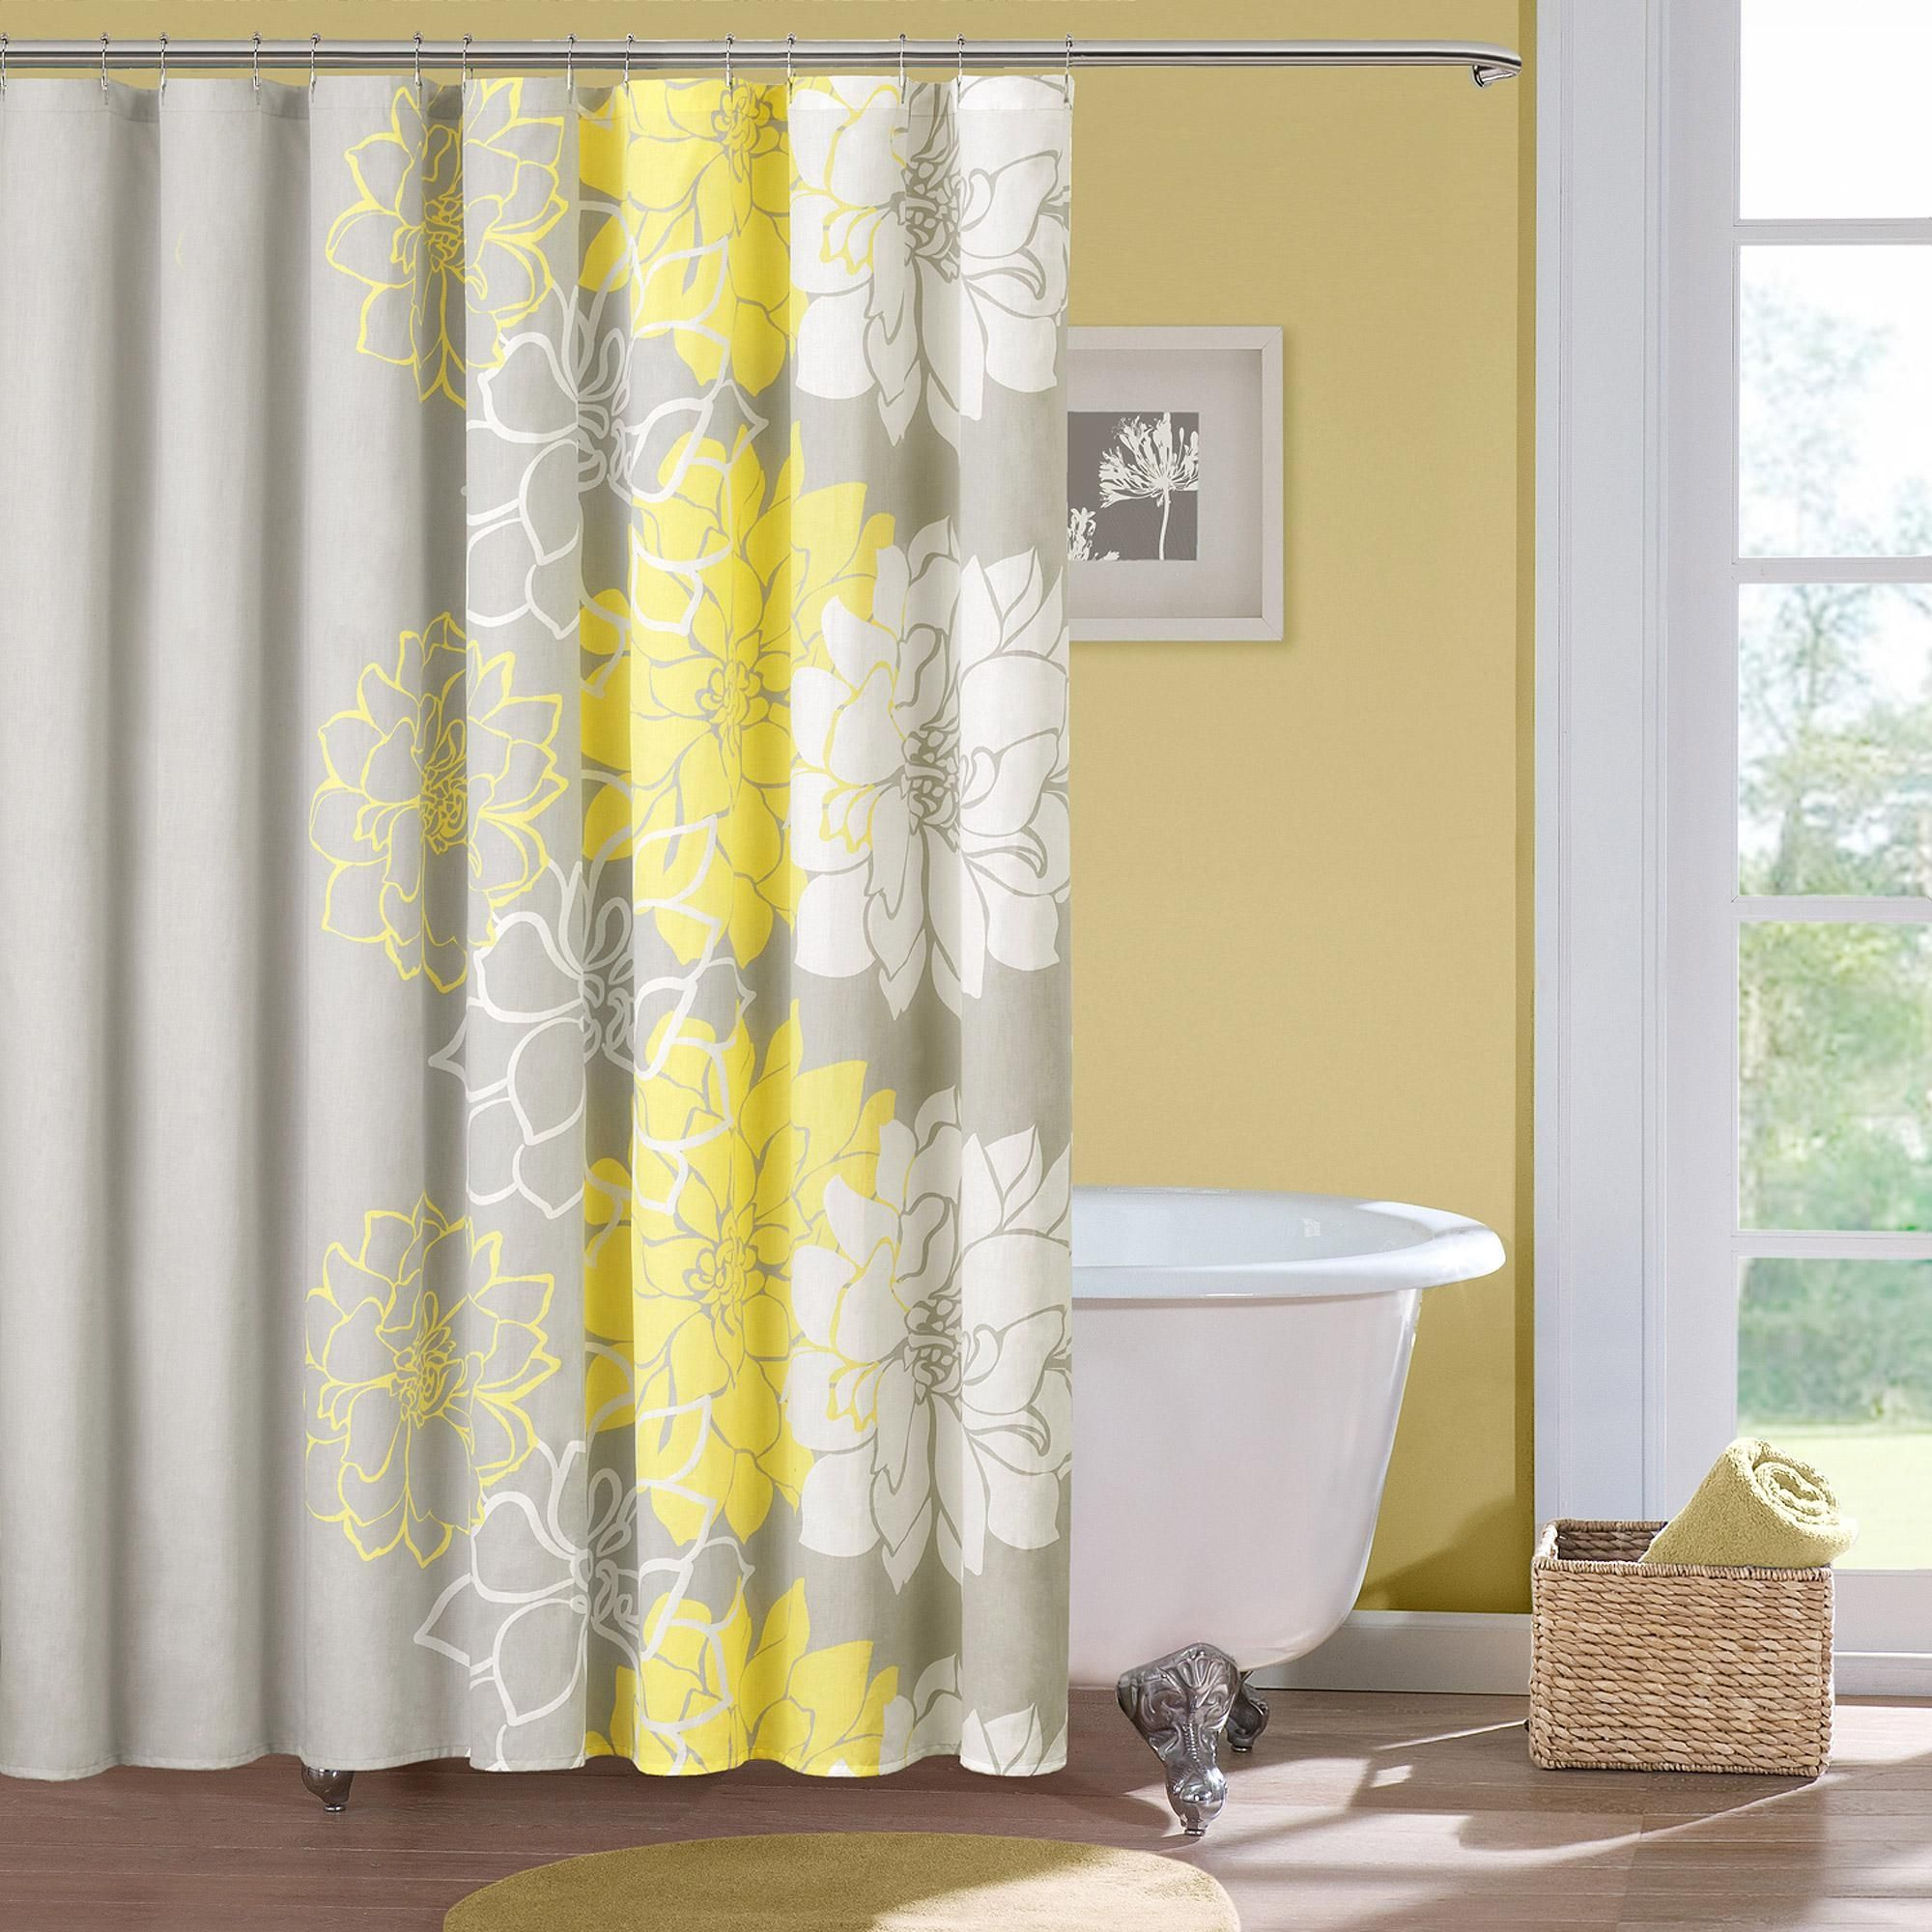 Navy Blue And Yellow Floral Shower Curtain | http://legalize-crew ...